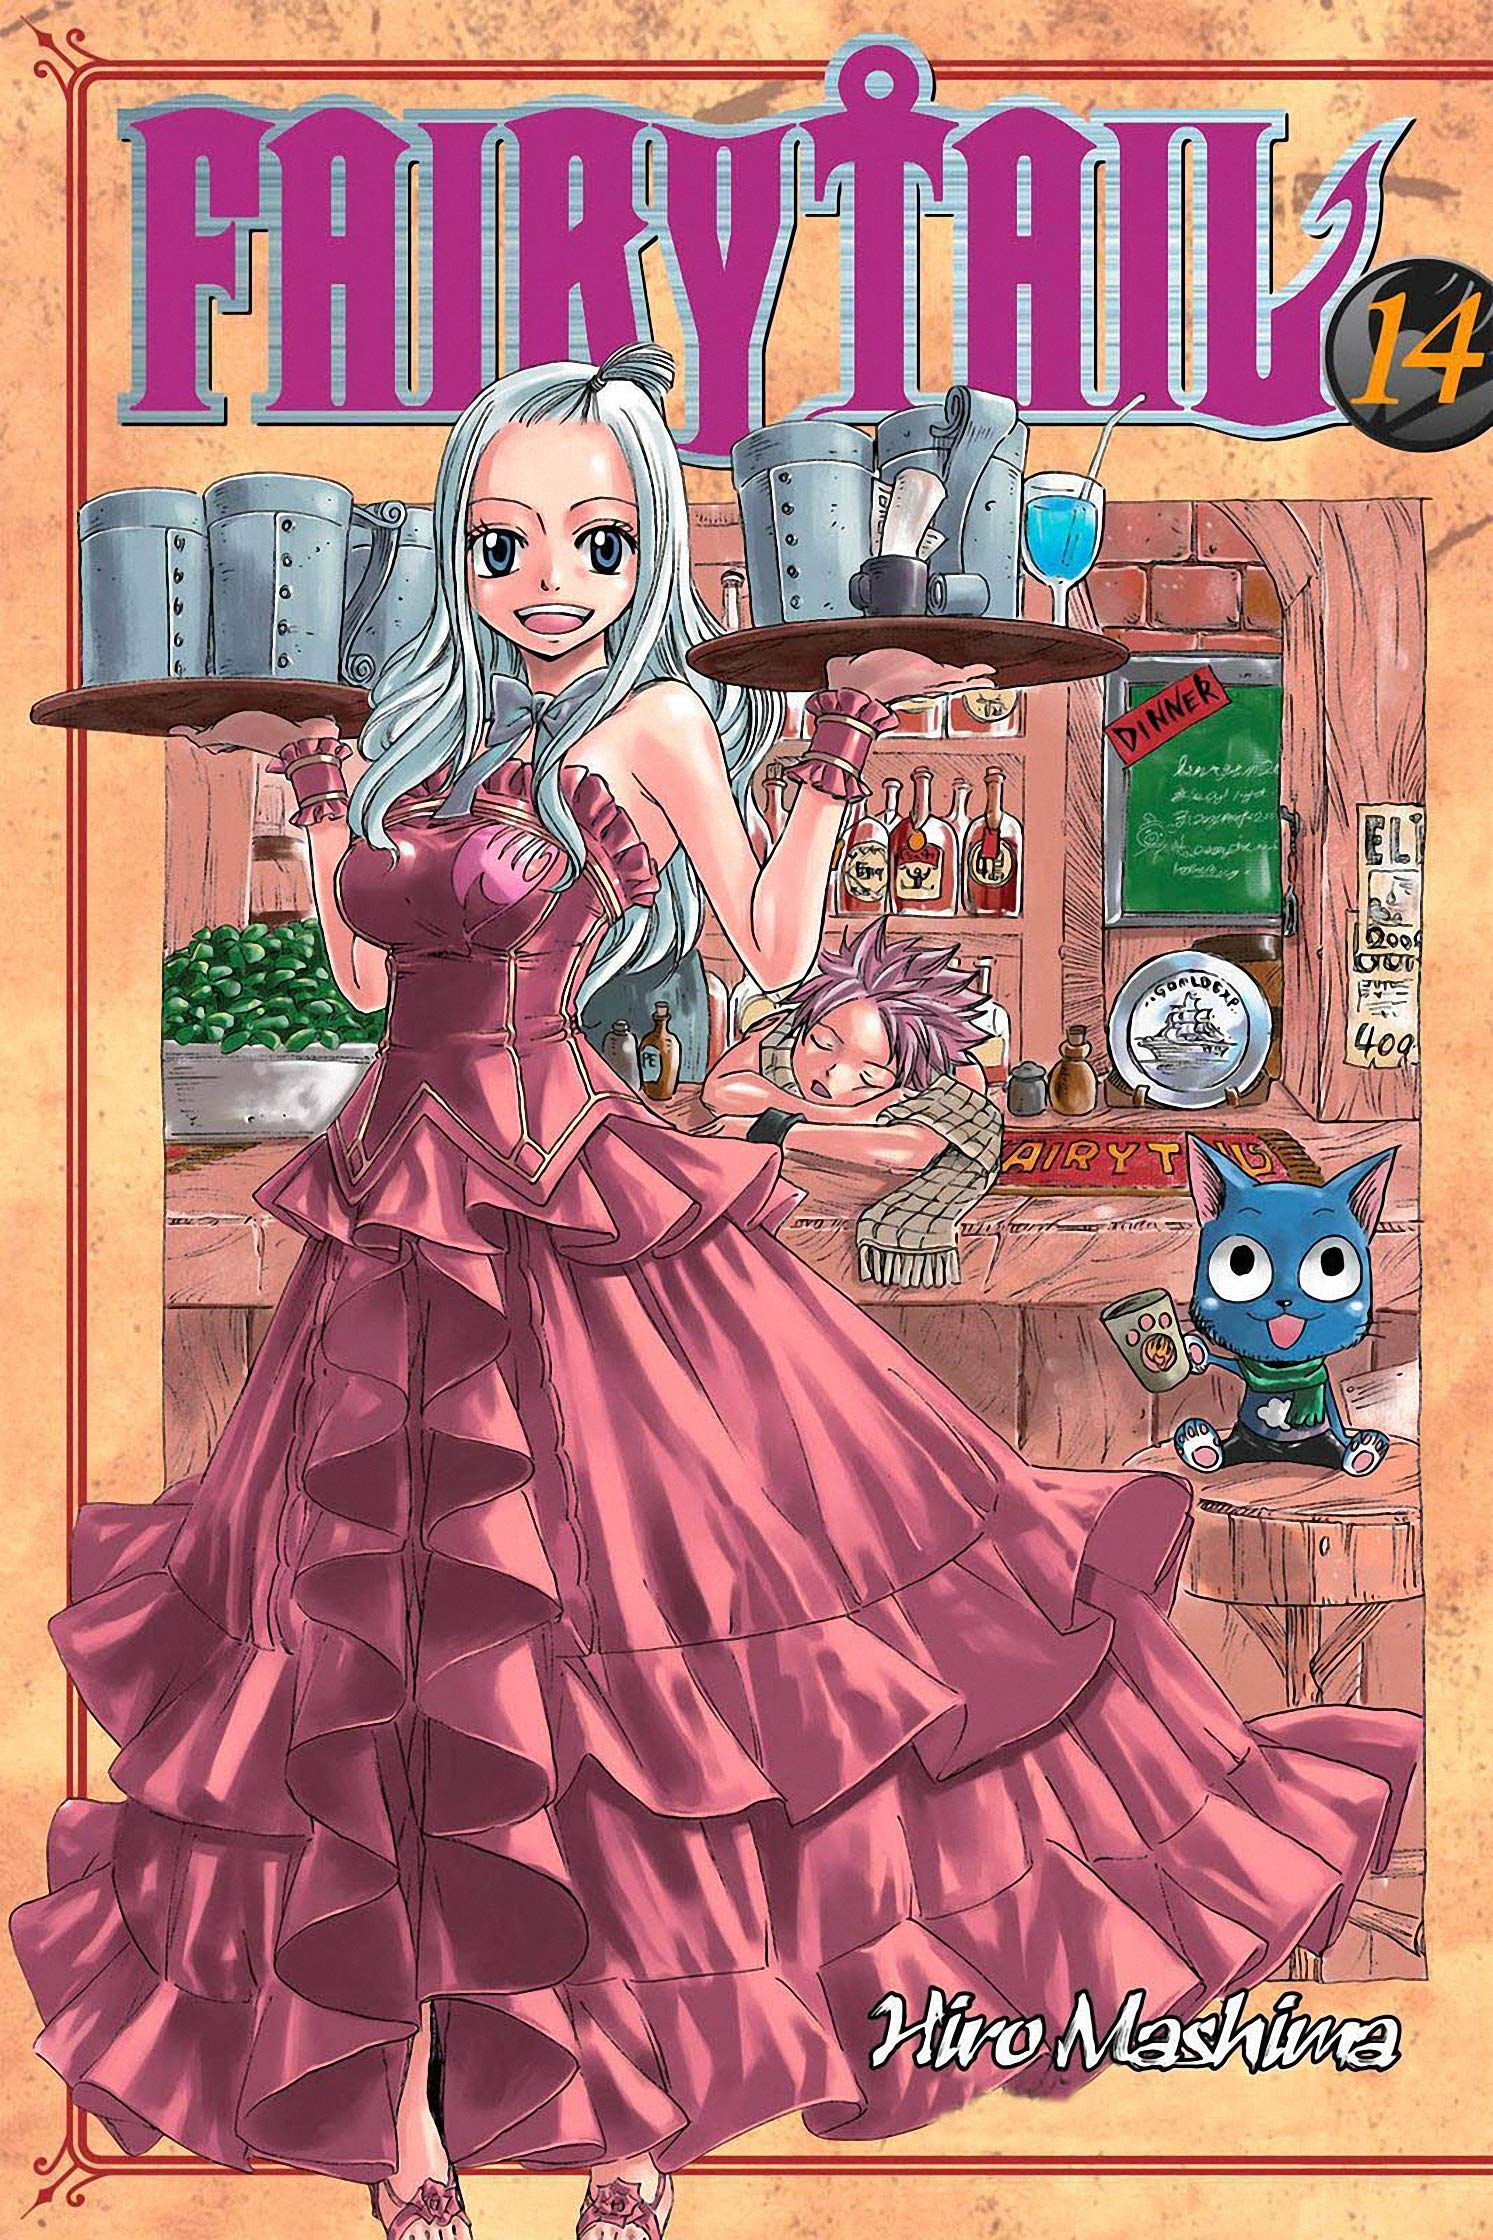 Fair: Tail - Book 14 Includes Vol 27 - 28 - Great Fairy Fantasy Action Graphic Novel Manga For Adults, Teenagers, Kids, Manga Lover